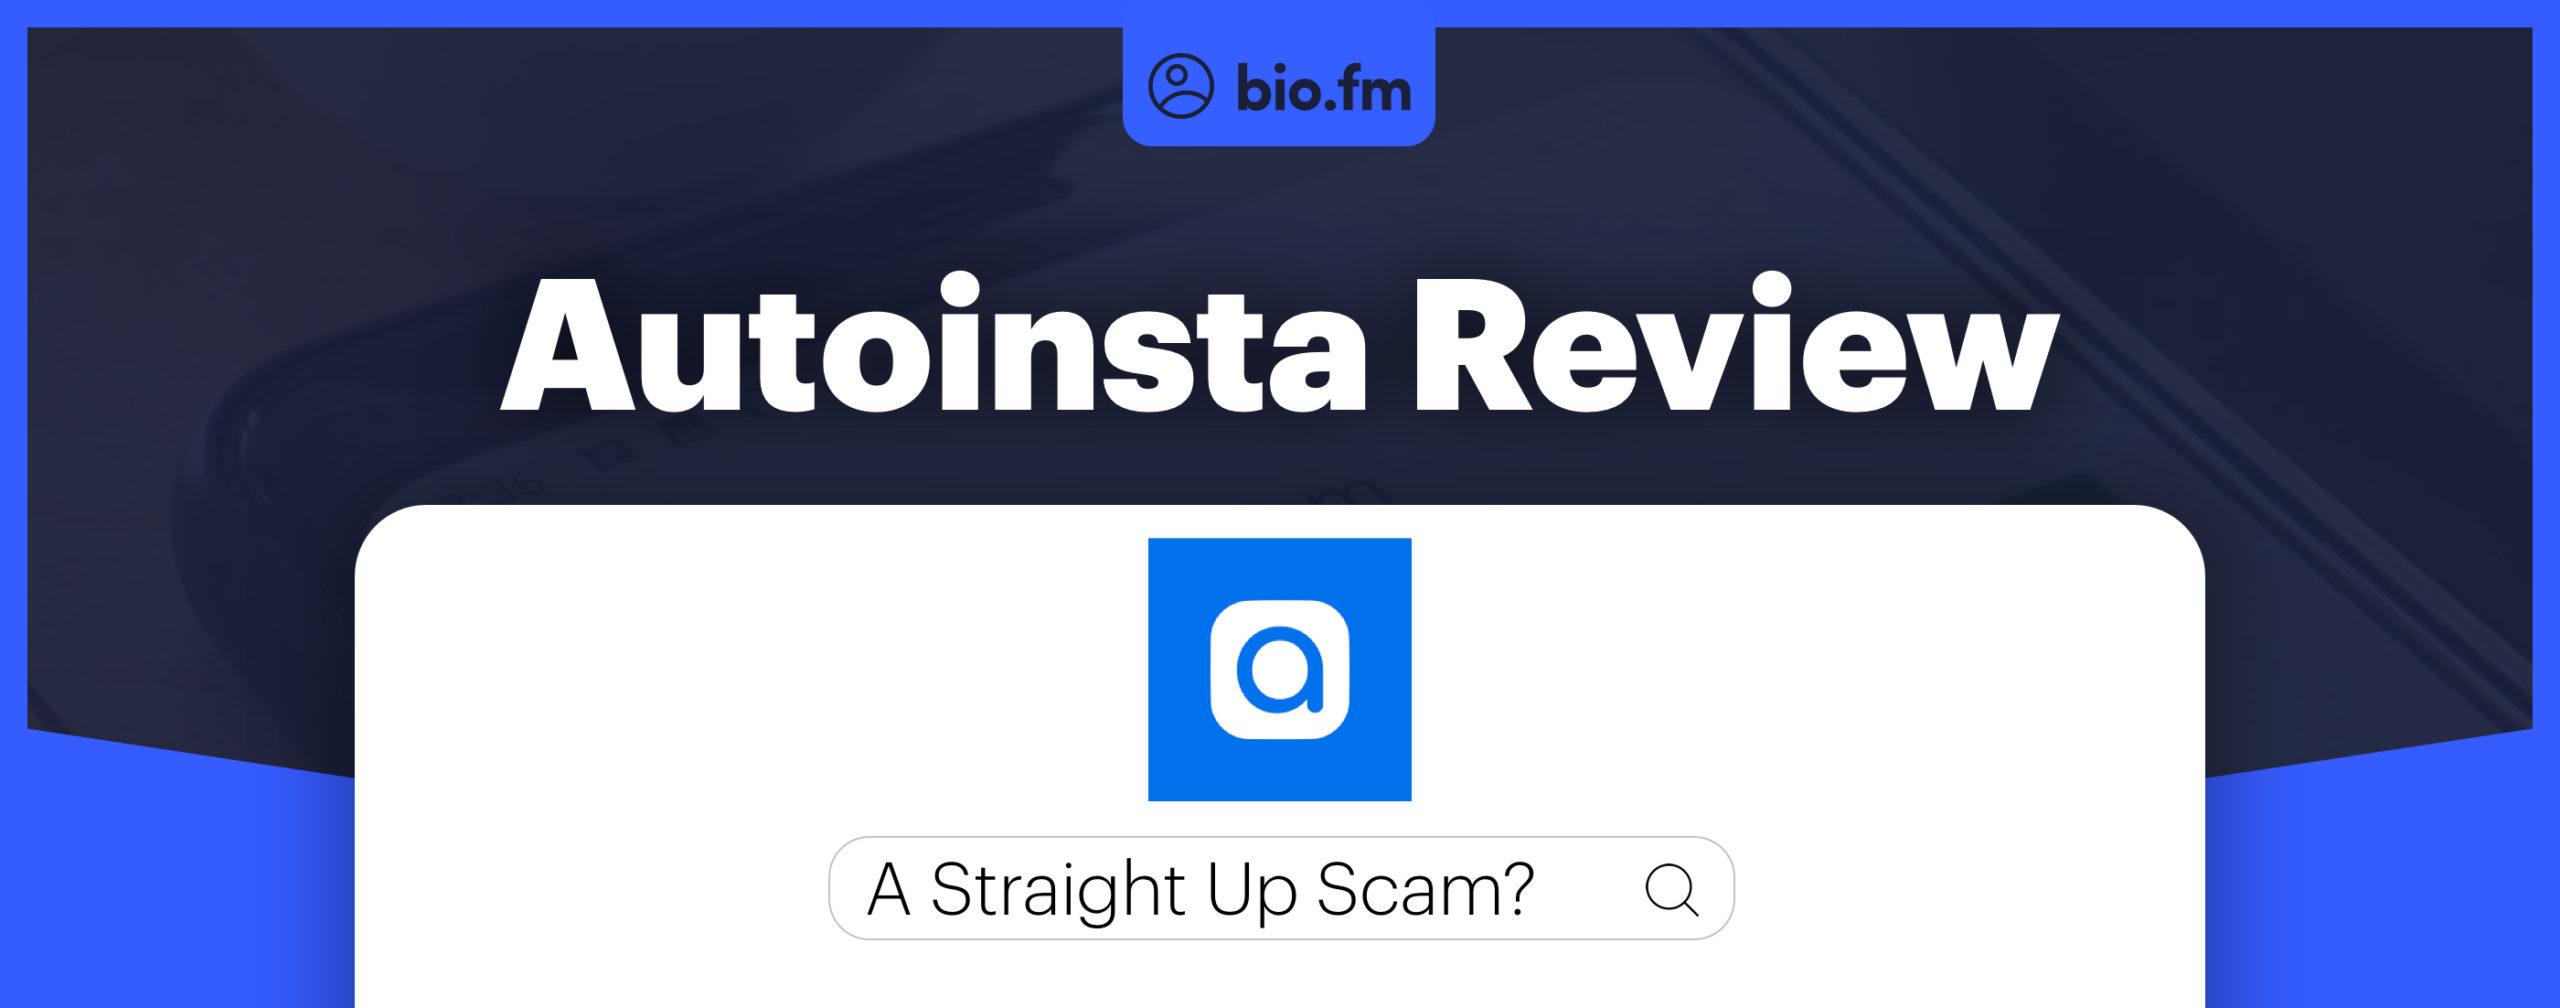 autoinsta review featured image